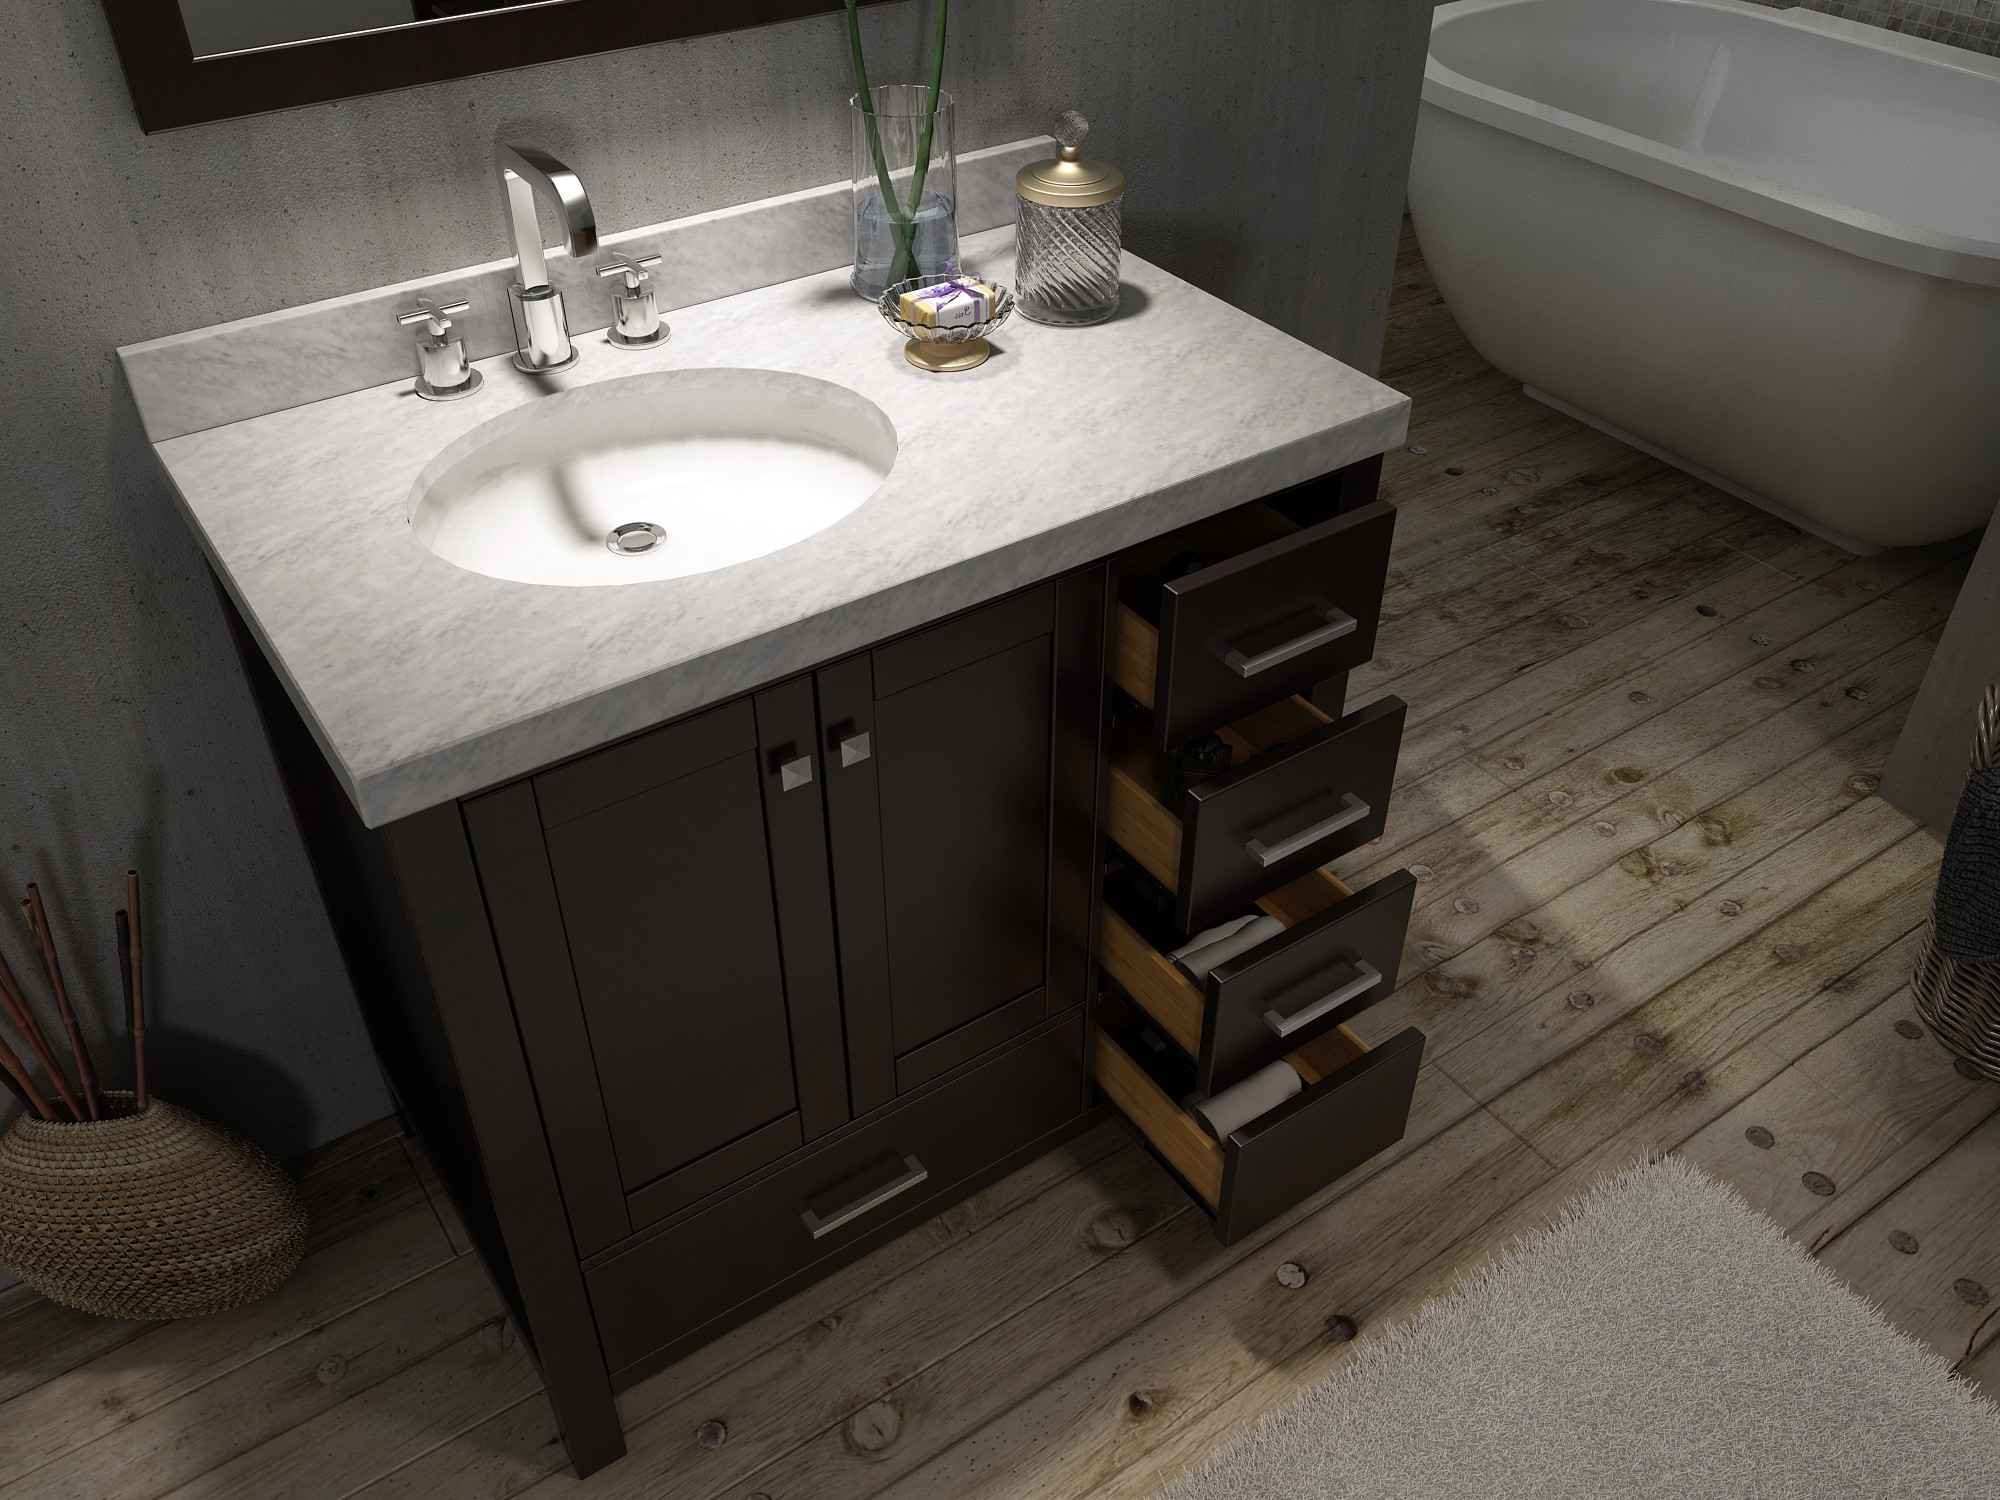 48 Inch Bathroom Vanity With Offset Sink